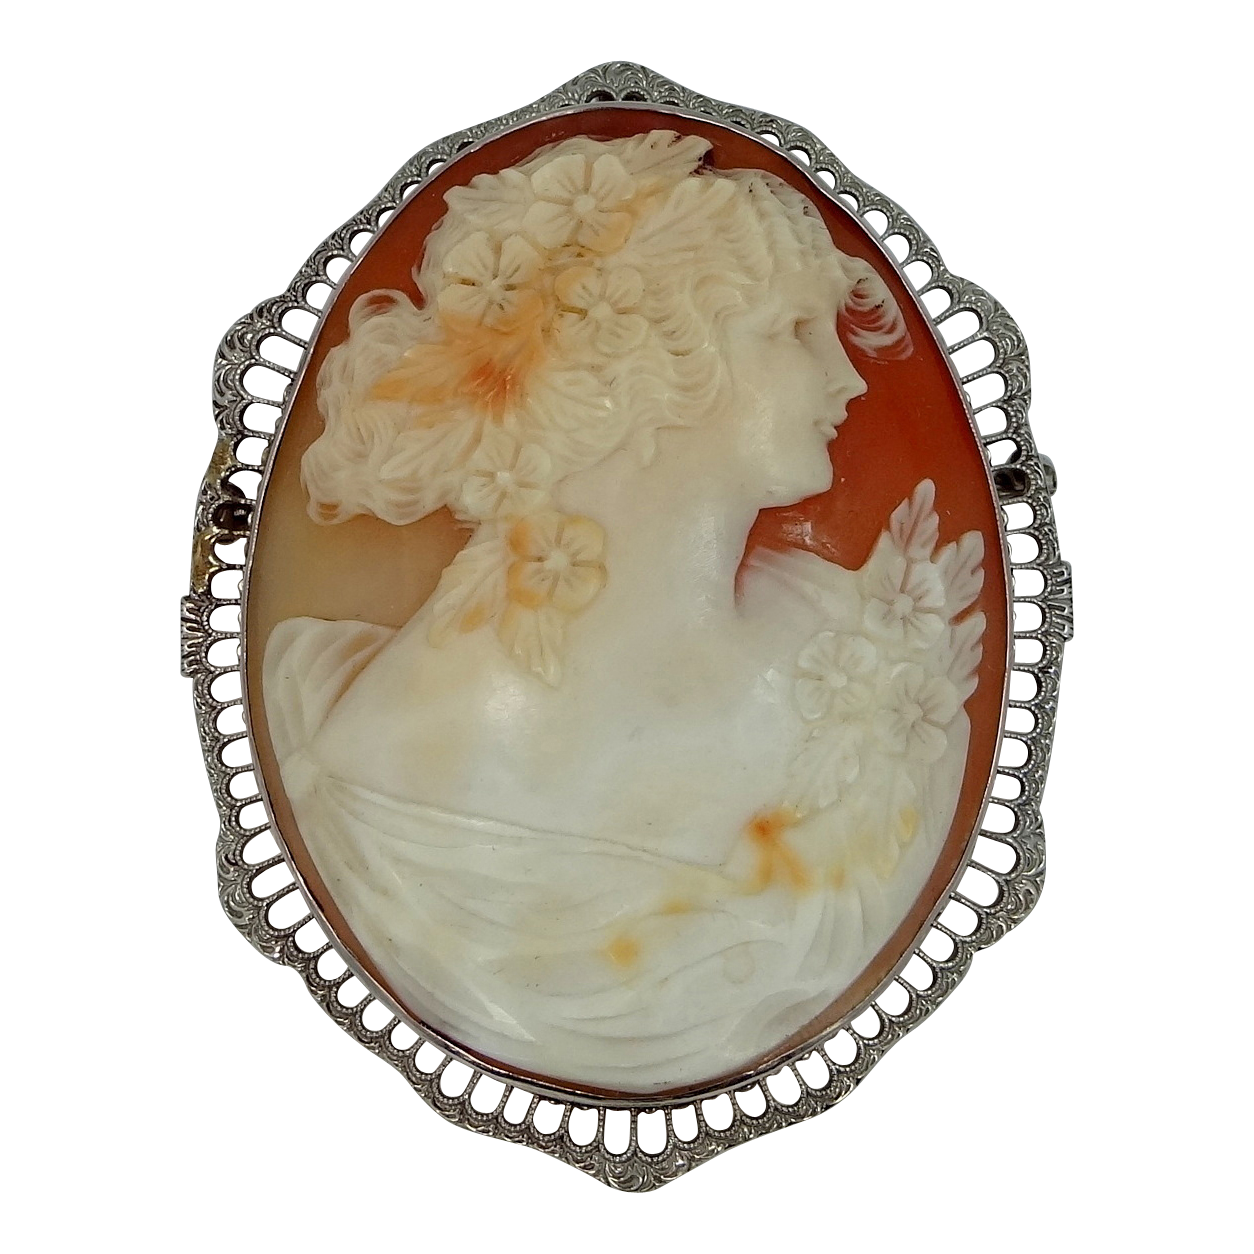 Large 10k White Gold Filigree Cameo Brooch / Pendant